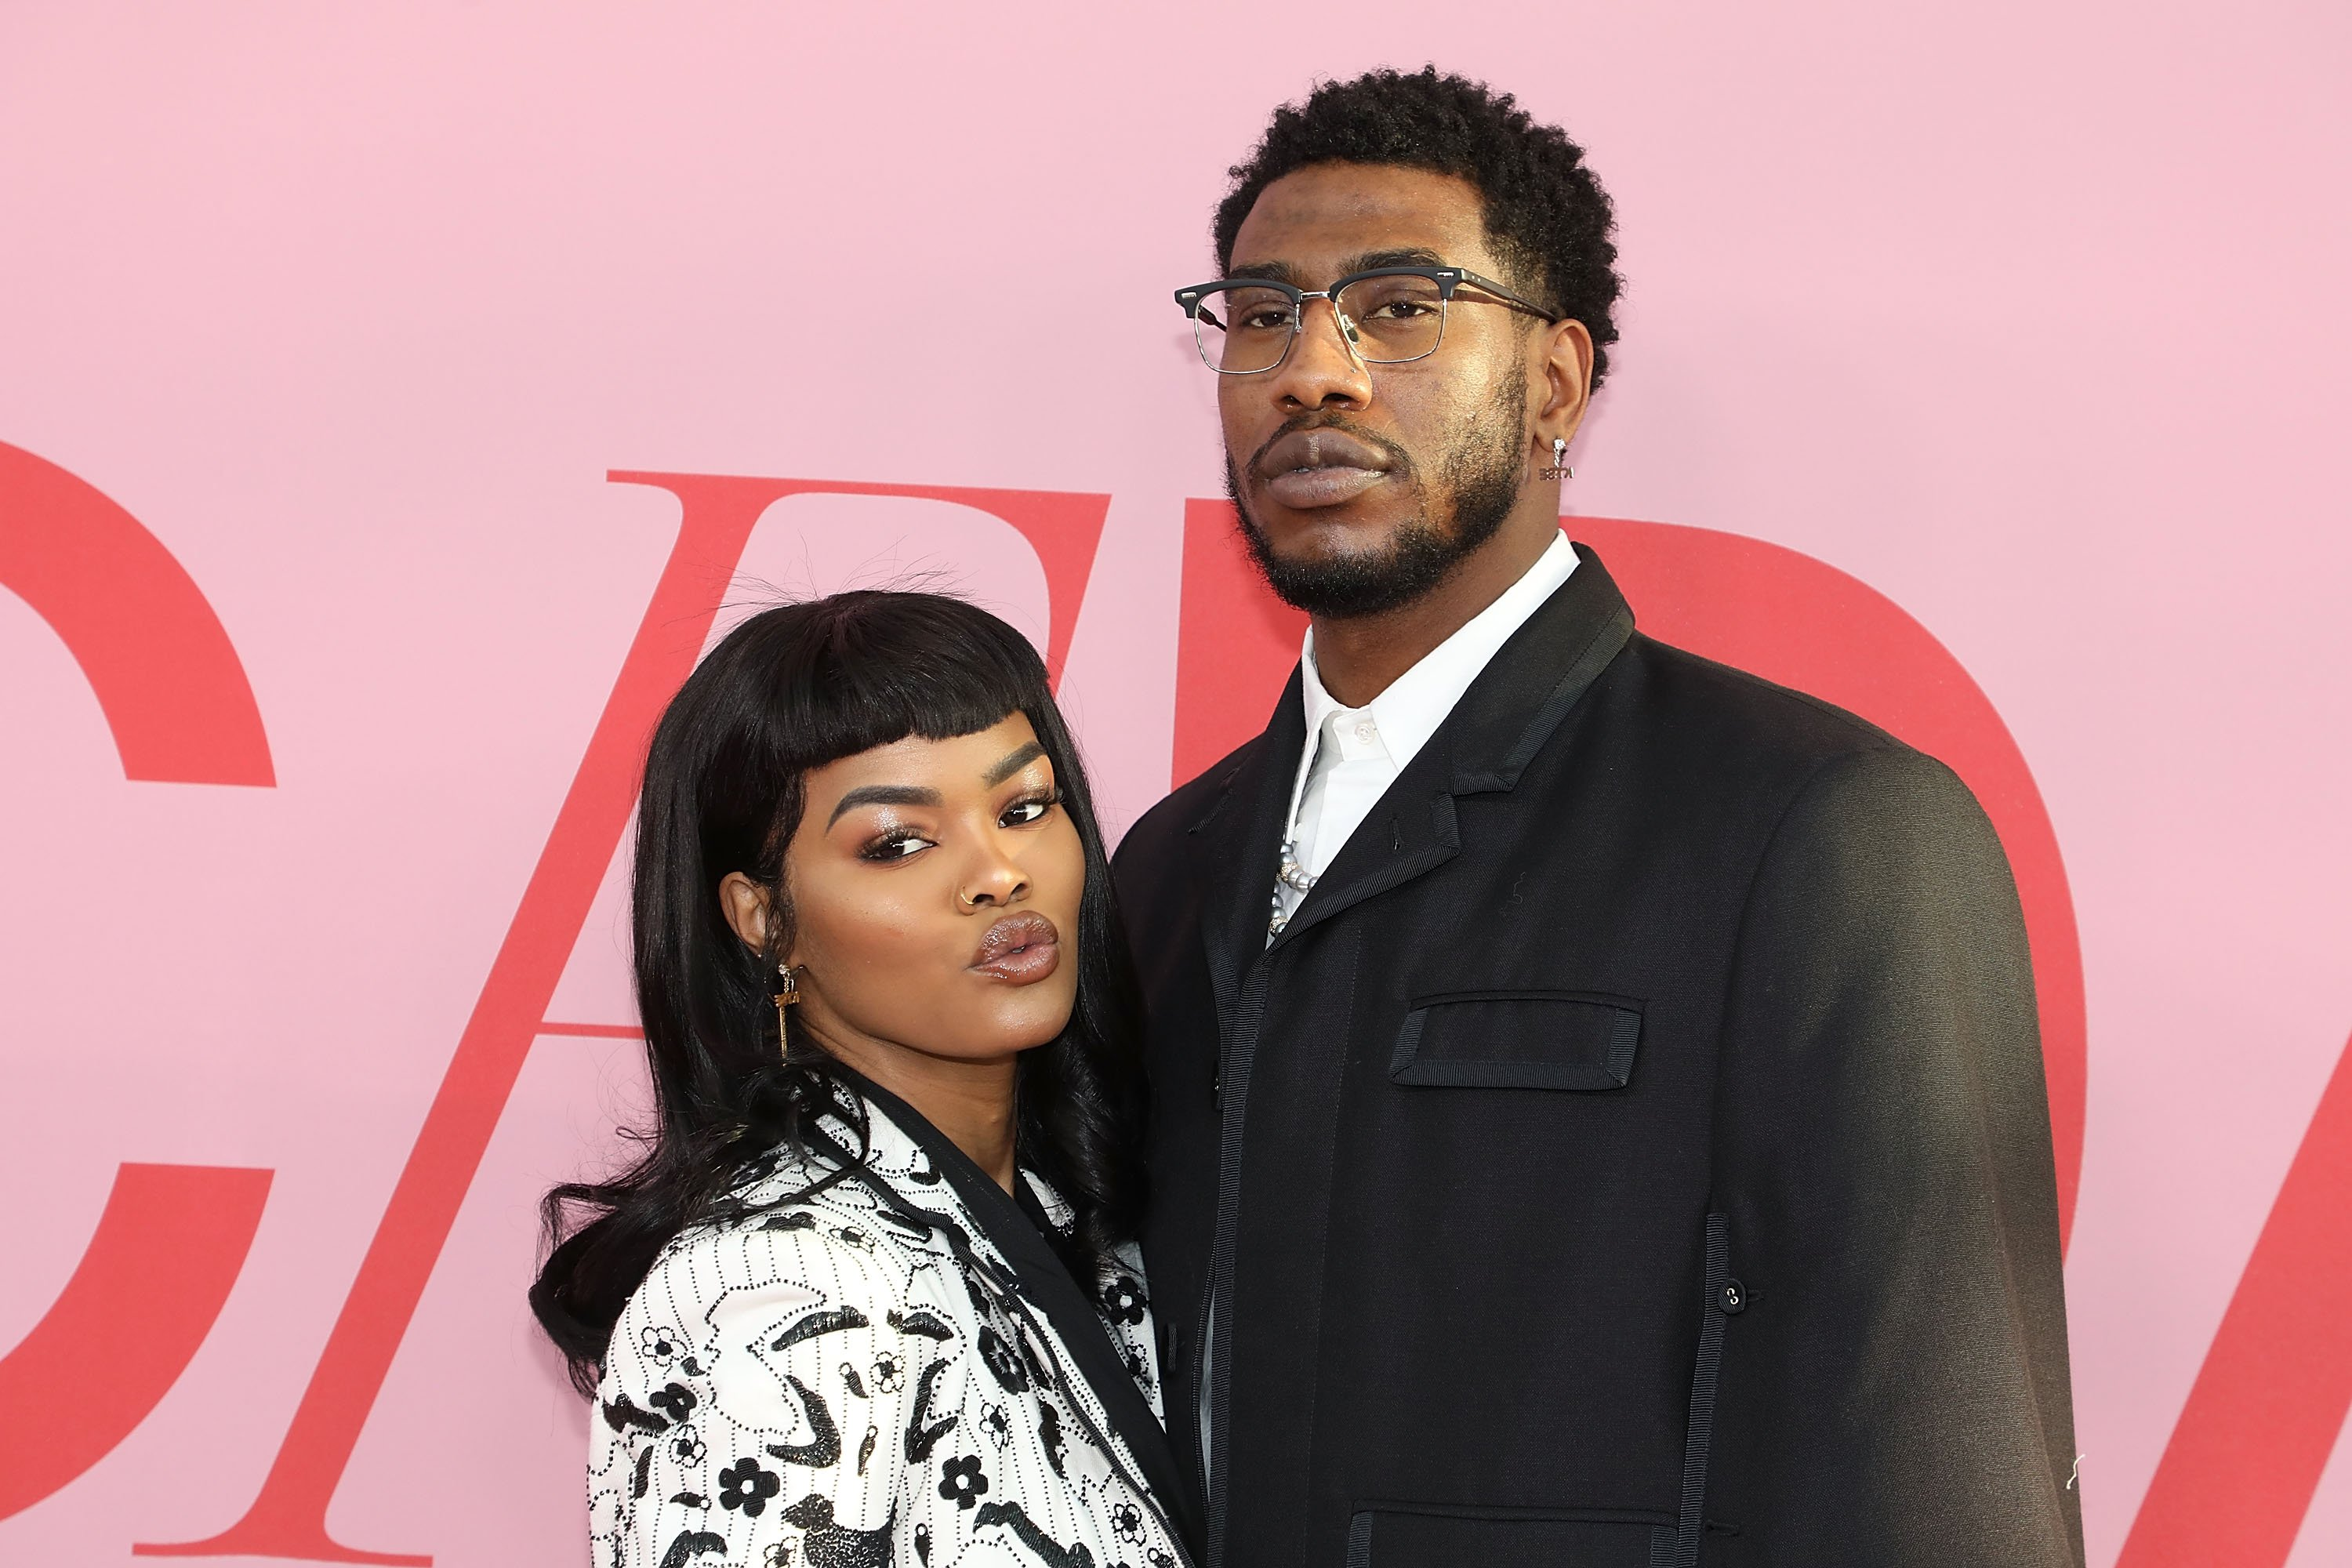 Teyana Taylor and Iman Shumpert at the 2019 CFDA Awards on June 3, 2019. | Photo: Getty Images